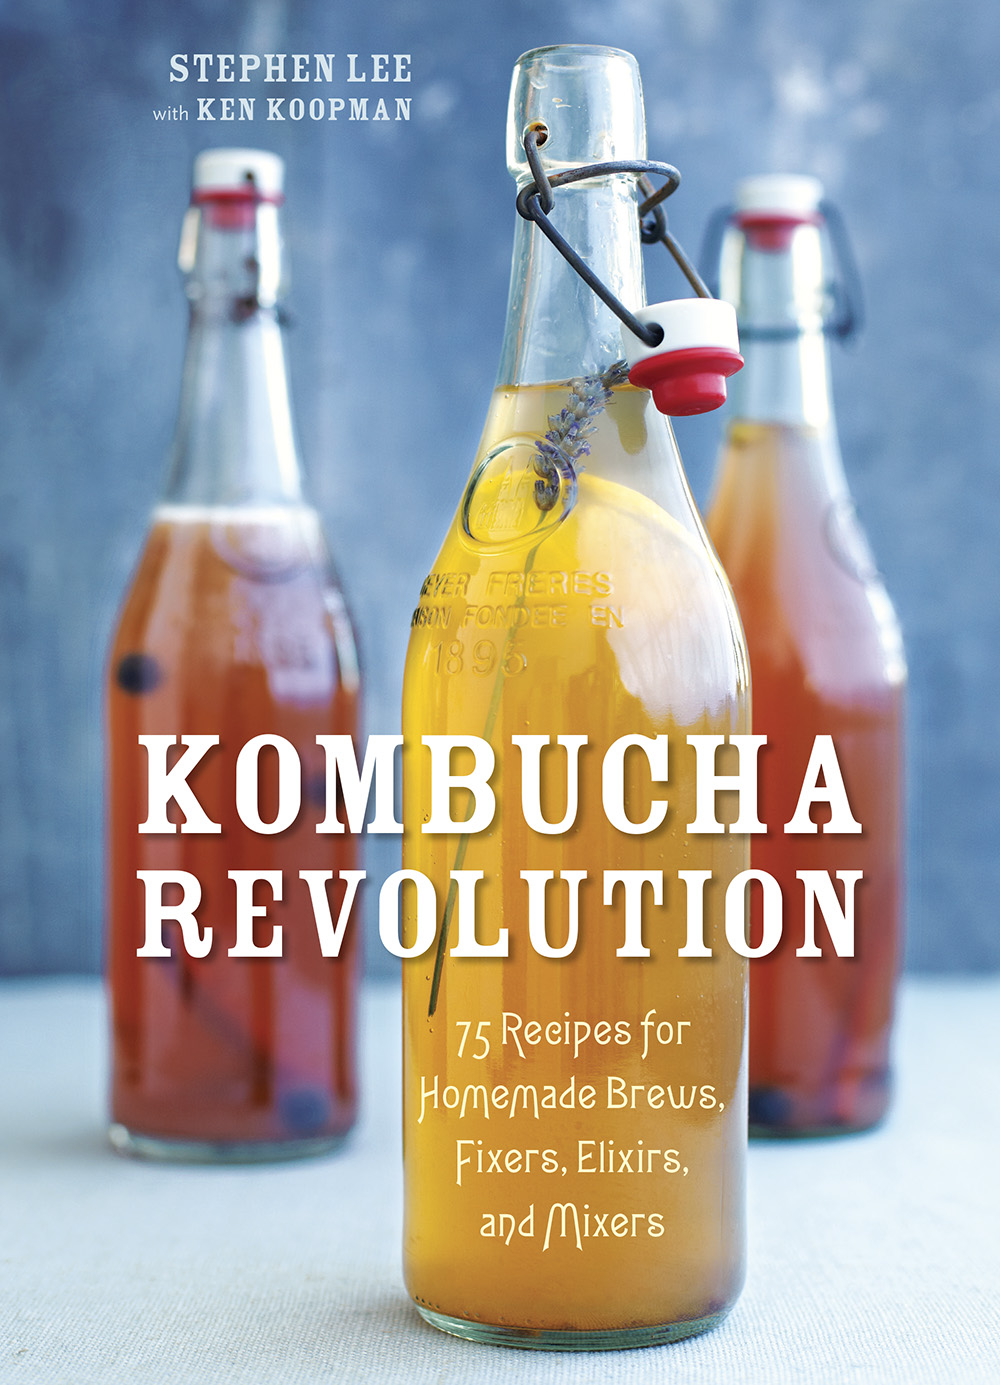 STEPHEN LEE/KOMBUCHA REVOLUTION